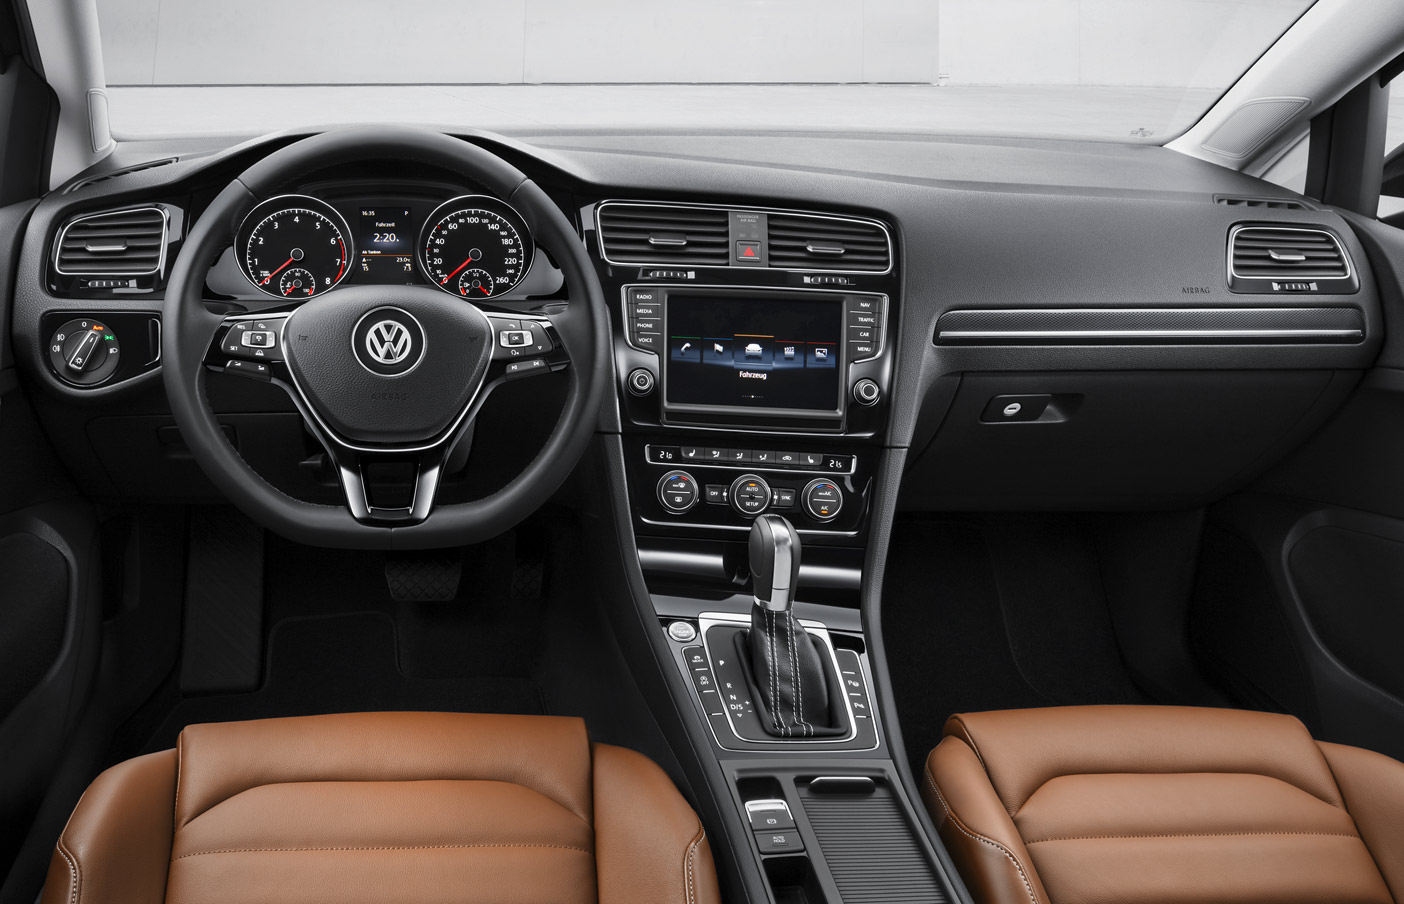 volkswagen golf 7 first official photos vwvortex. Black Bedroom Furniture Sets. Home Design Ideas